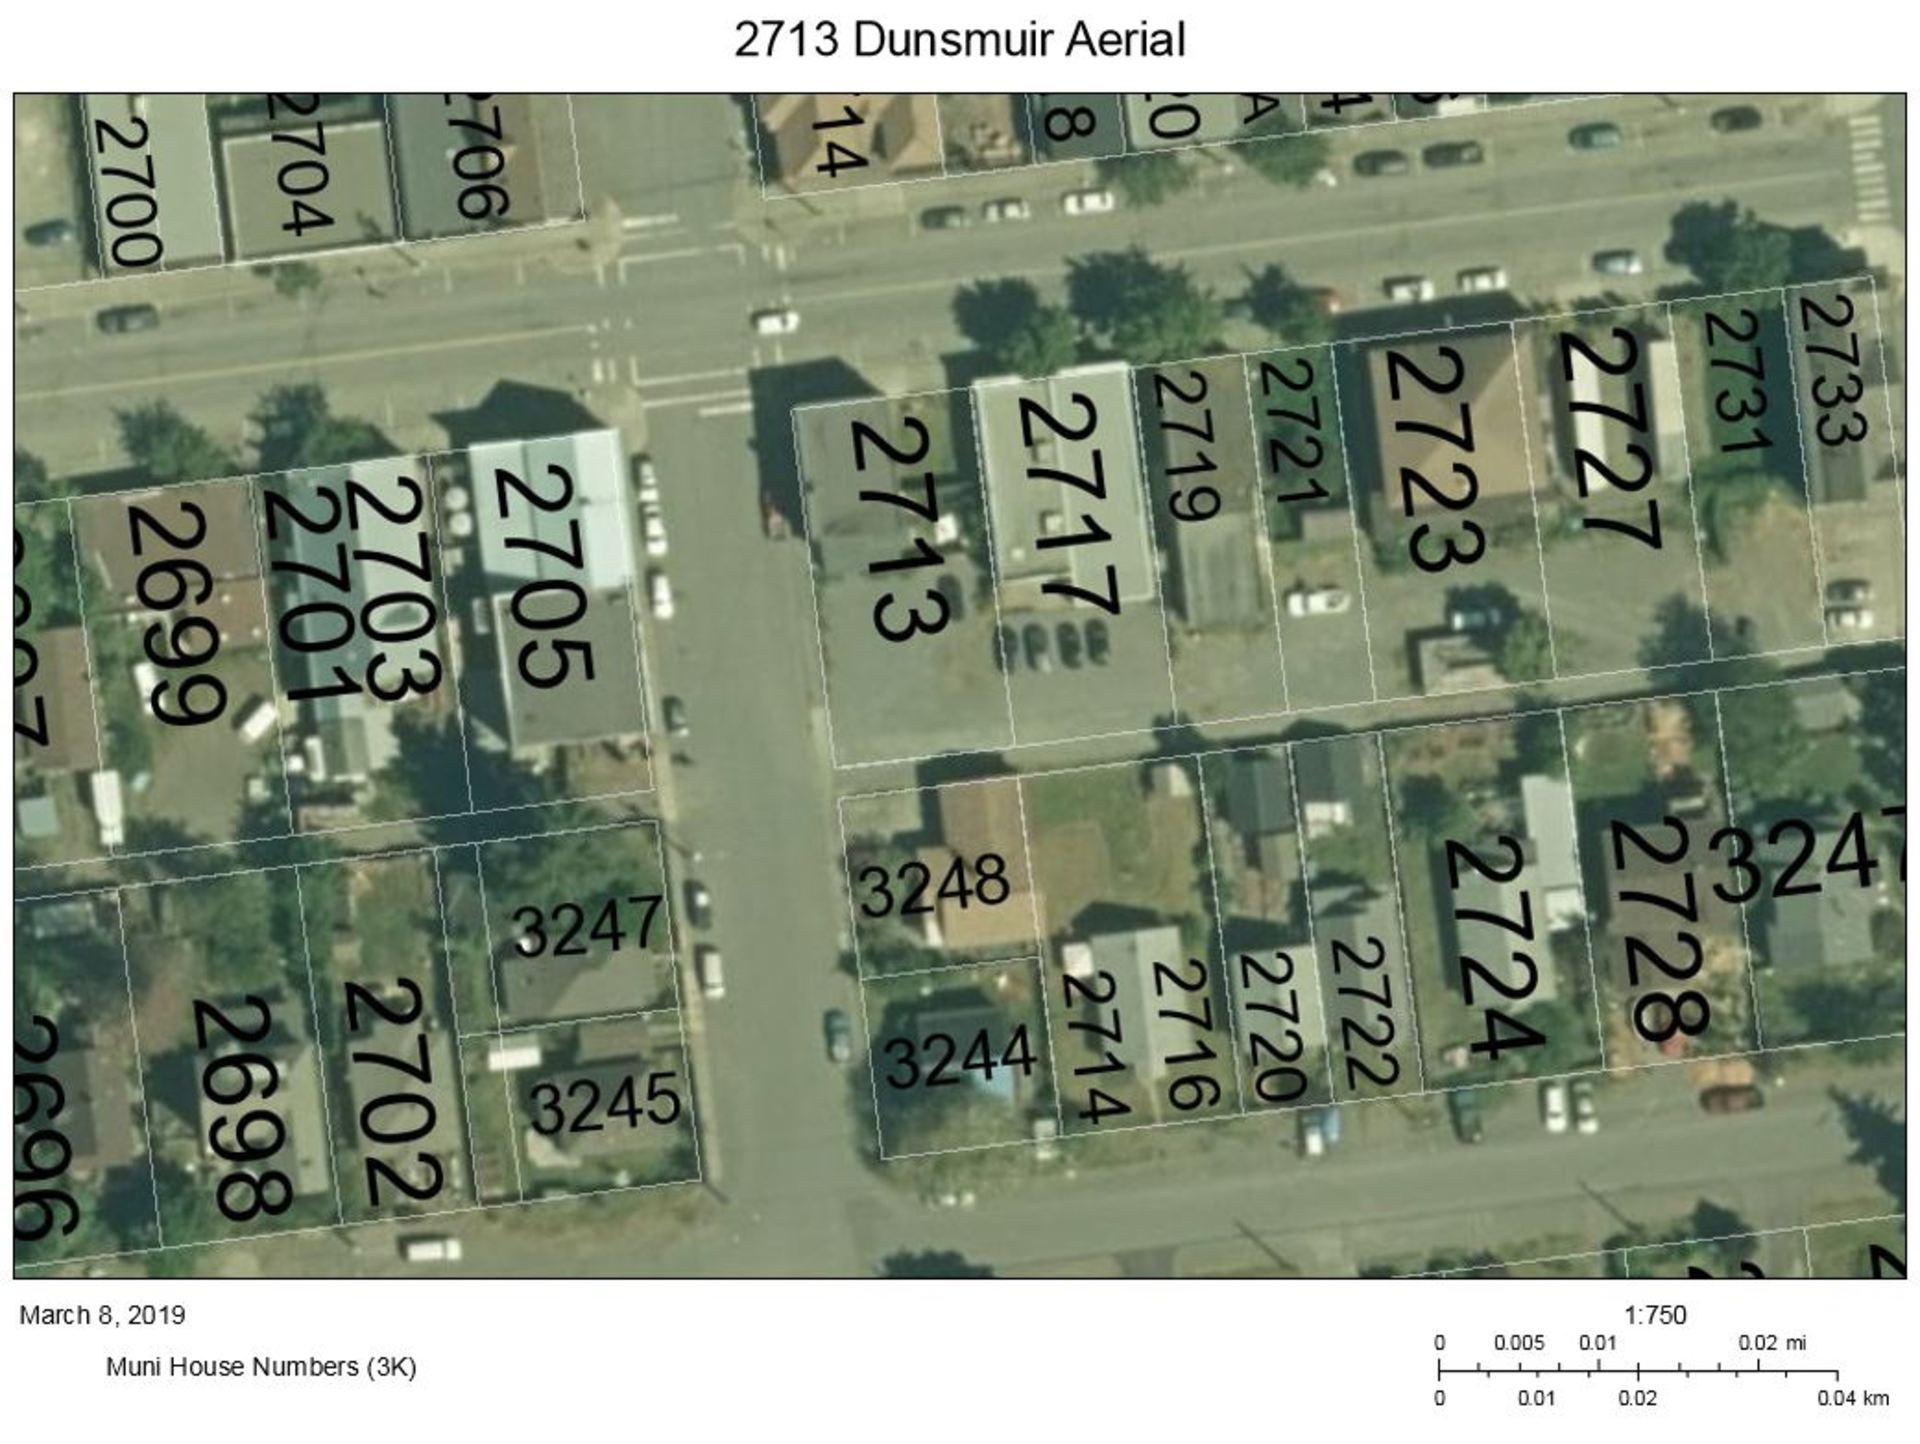 2713-dunsmuir-aerial at 2713 Dunsmuir Avenue, Cumberland, Comox Valley